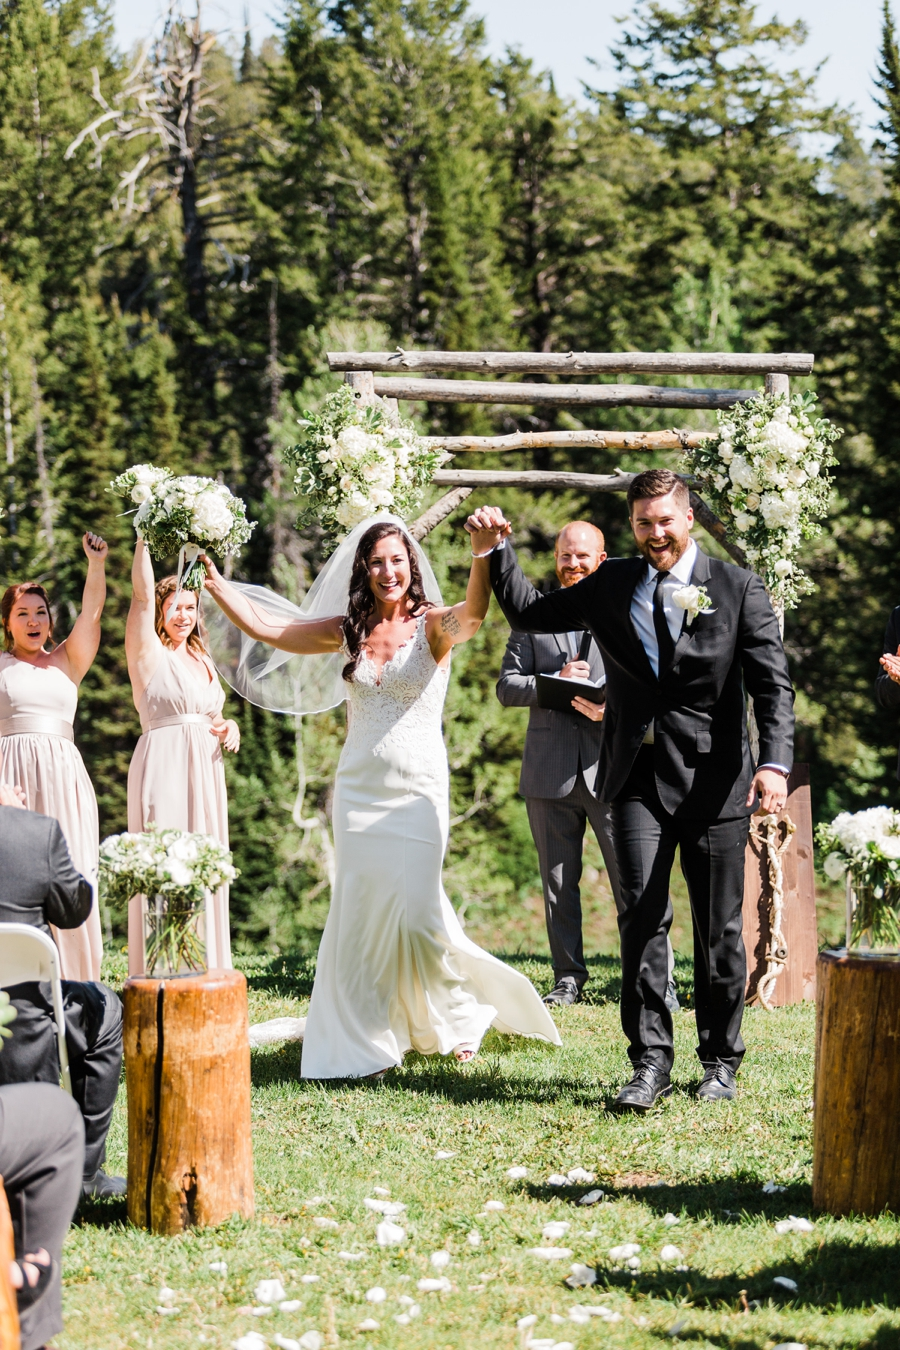 A bride and groom celebrate after their wedding ceremony at Grand Targhee in Wyoming